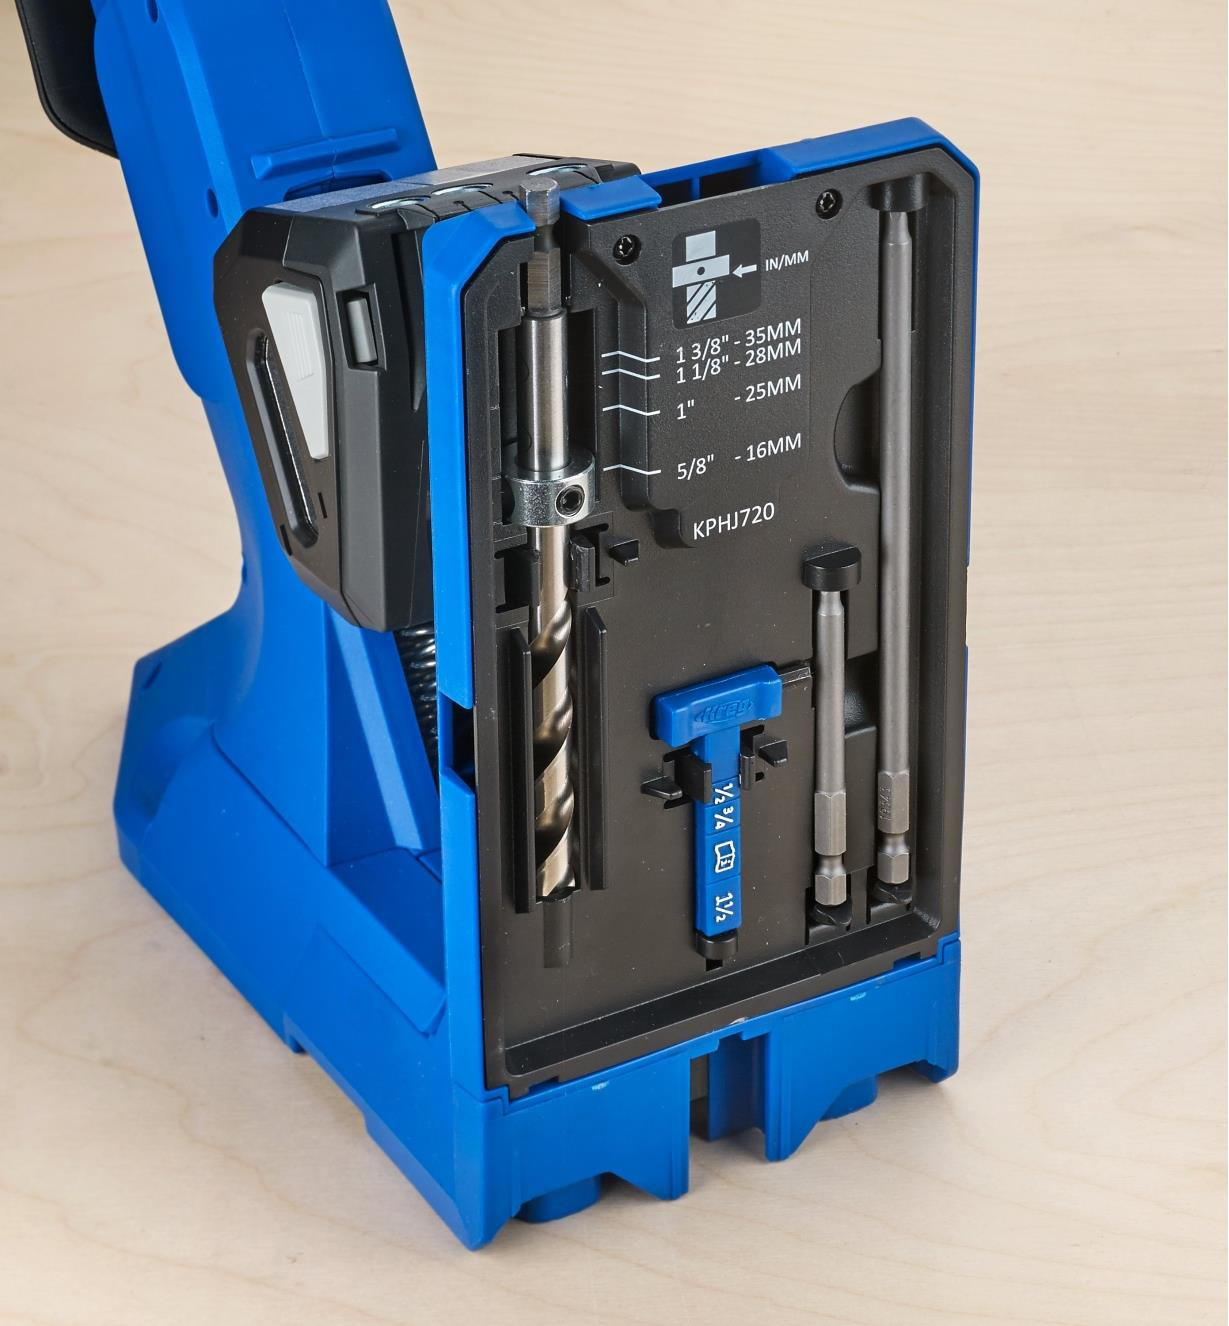 The included drill bit, driver bits and thickness gauge held in storage slots in the 720 jig base